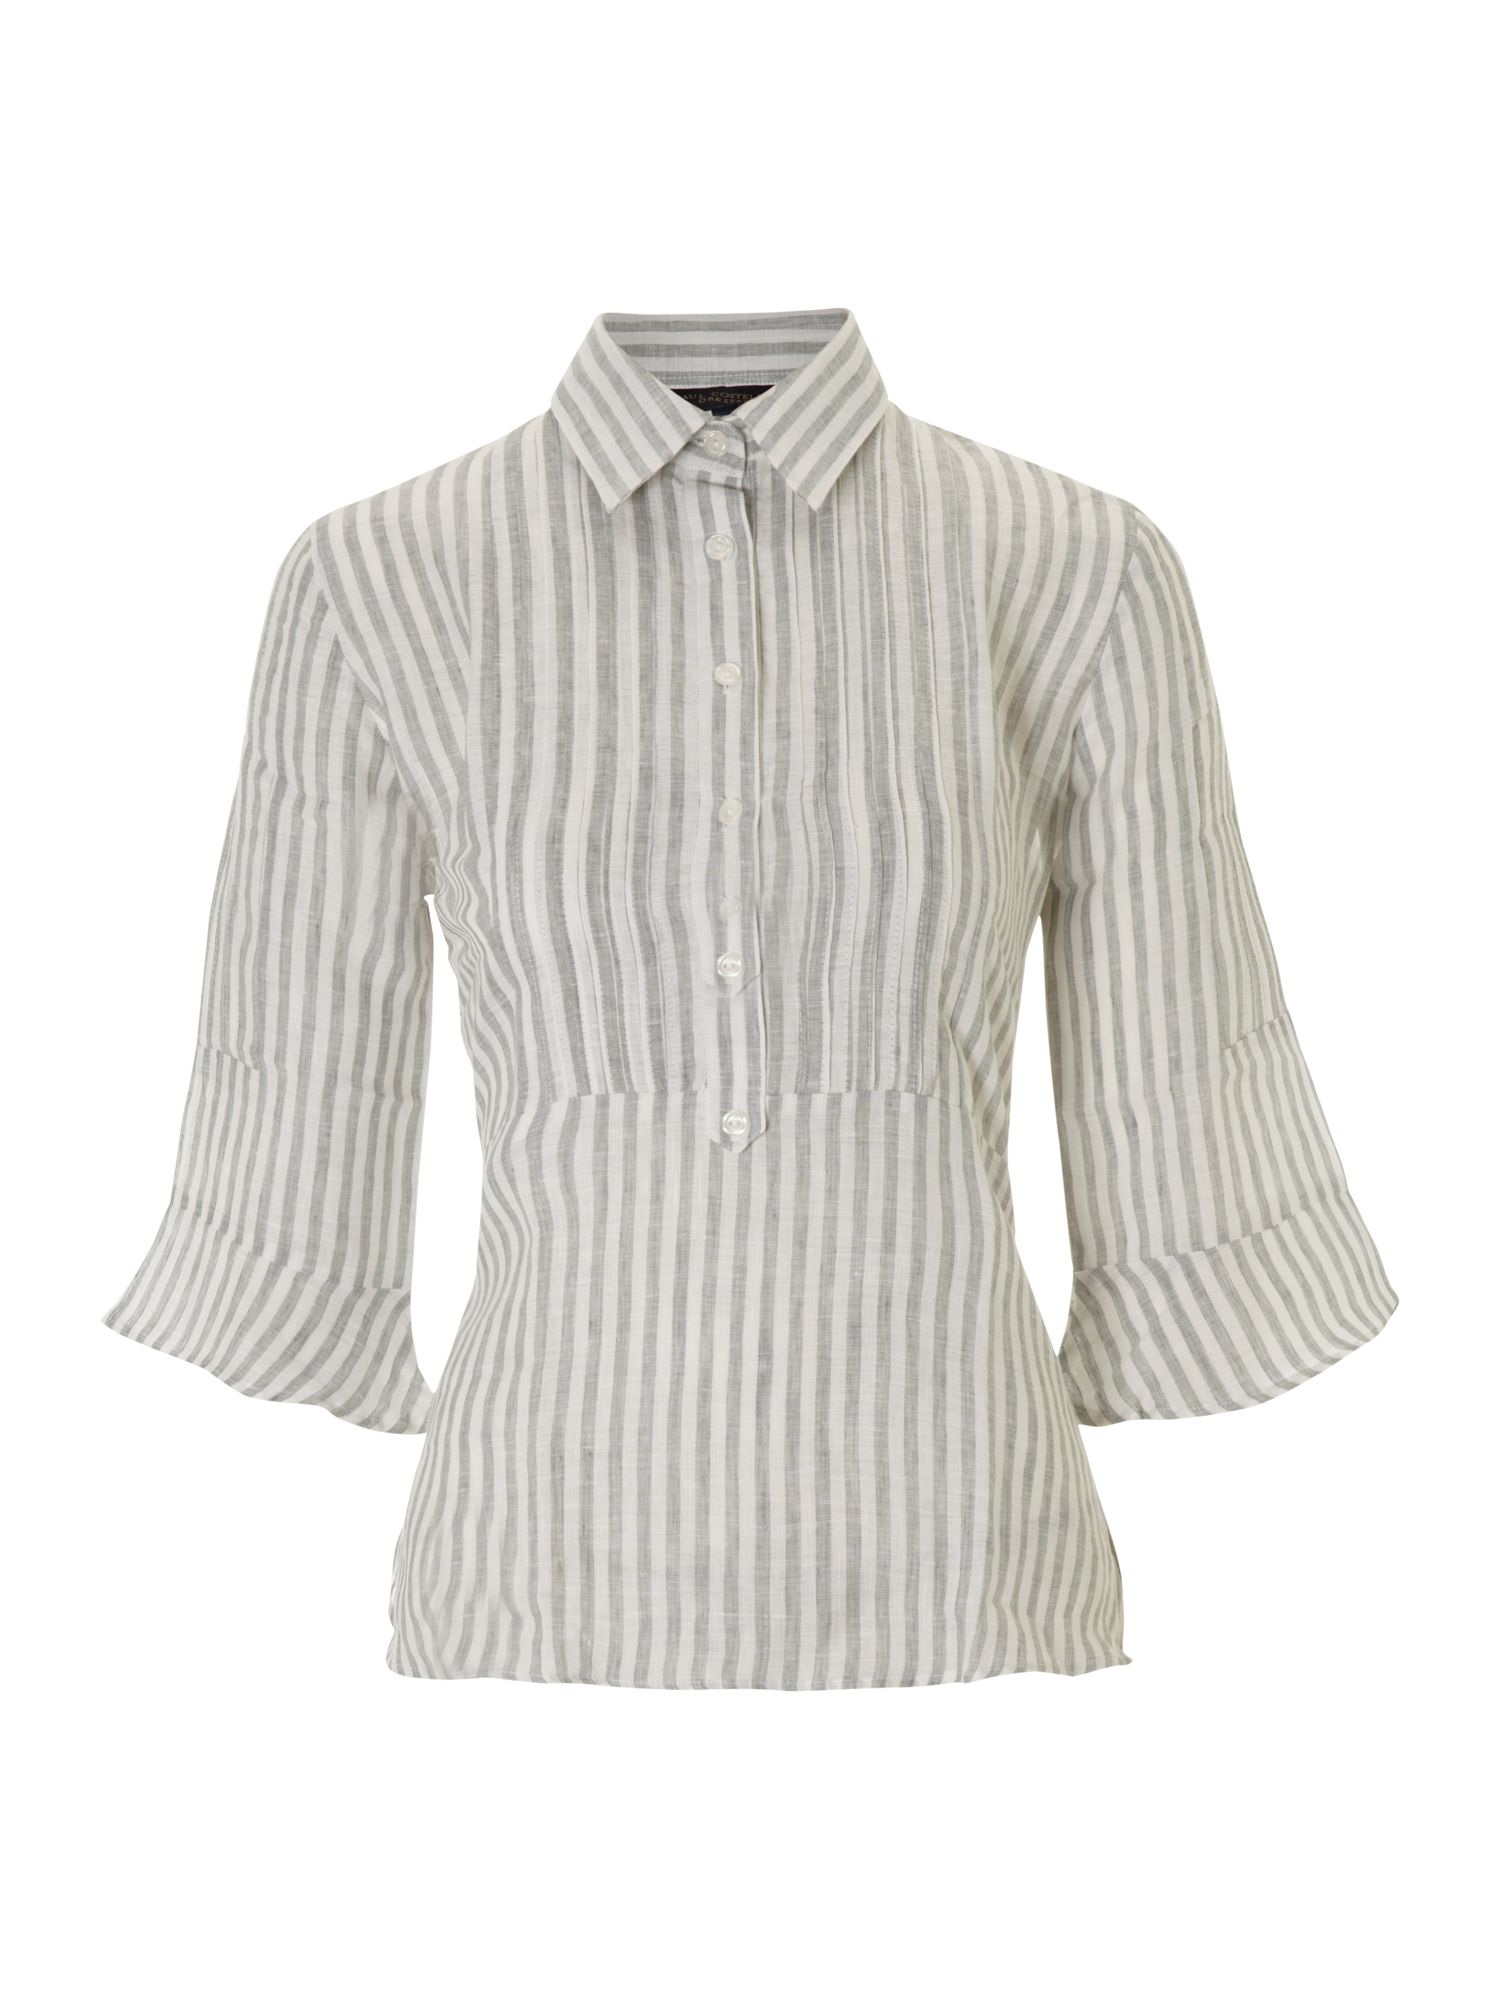 Paul Costelloe Striped linen blouse - White 12,12,8,8,10,10,14,14 product image